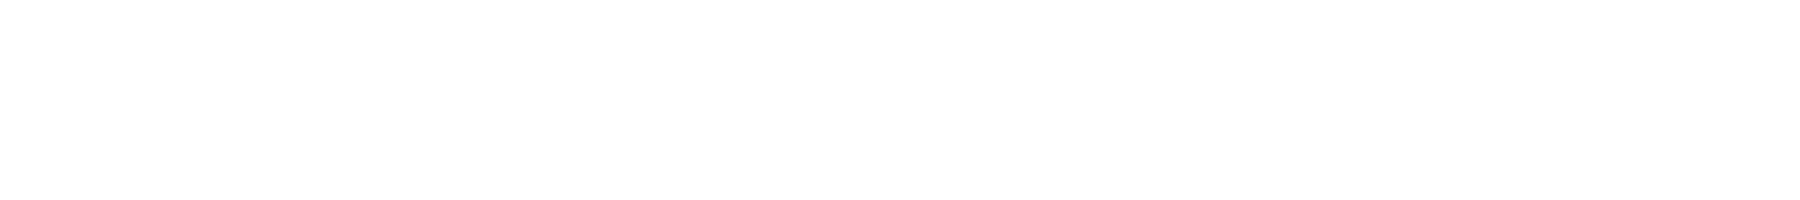 74% of employees say their job is more fulfilling when they can make a positive impact at work.